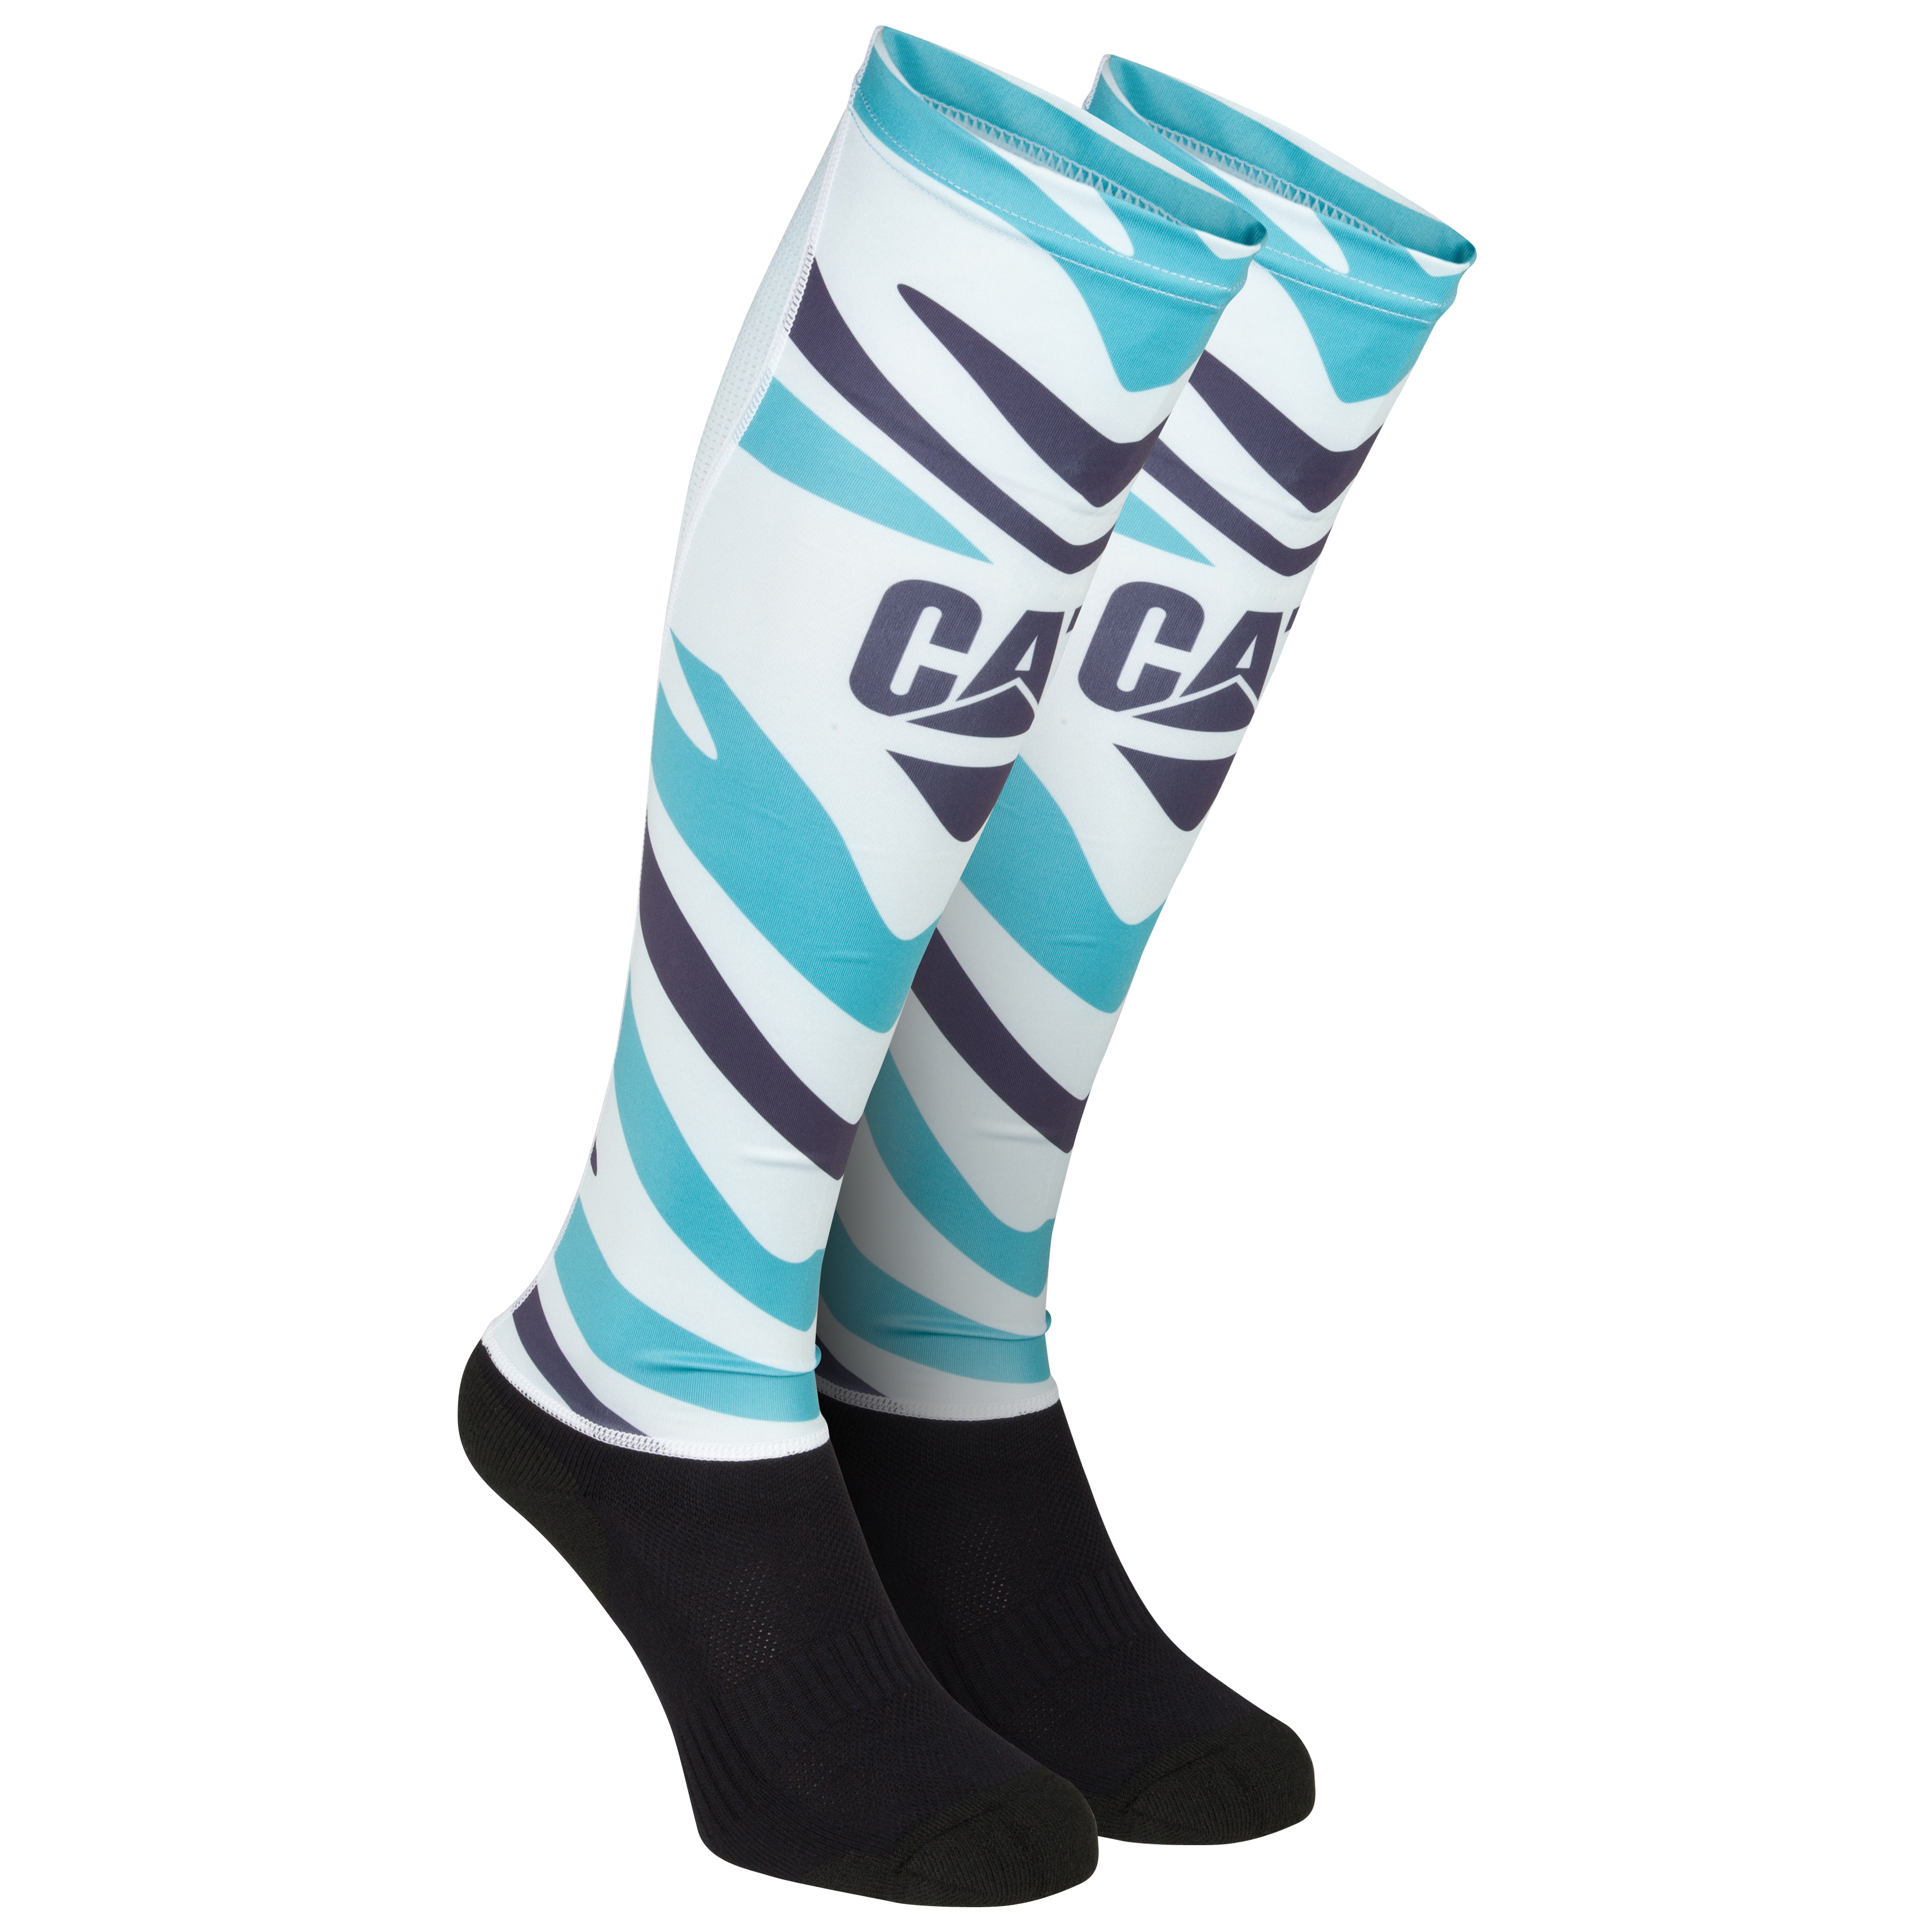 Leicester Tigers Alternate Hybrid Socks 2012/13